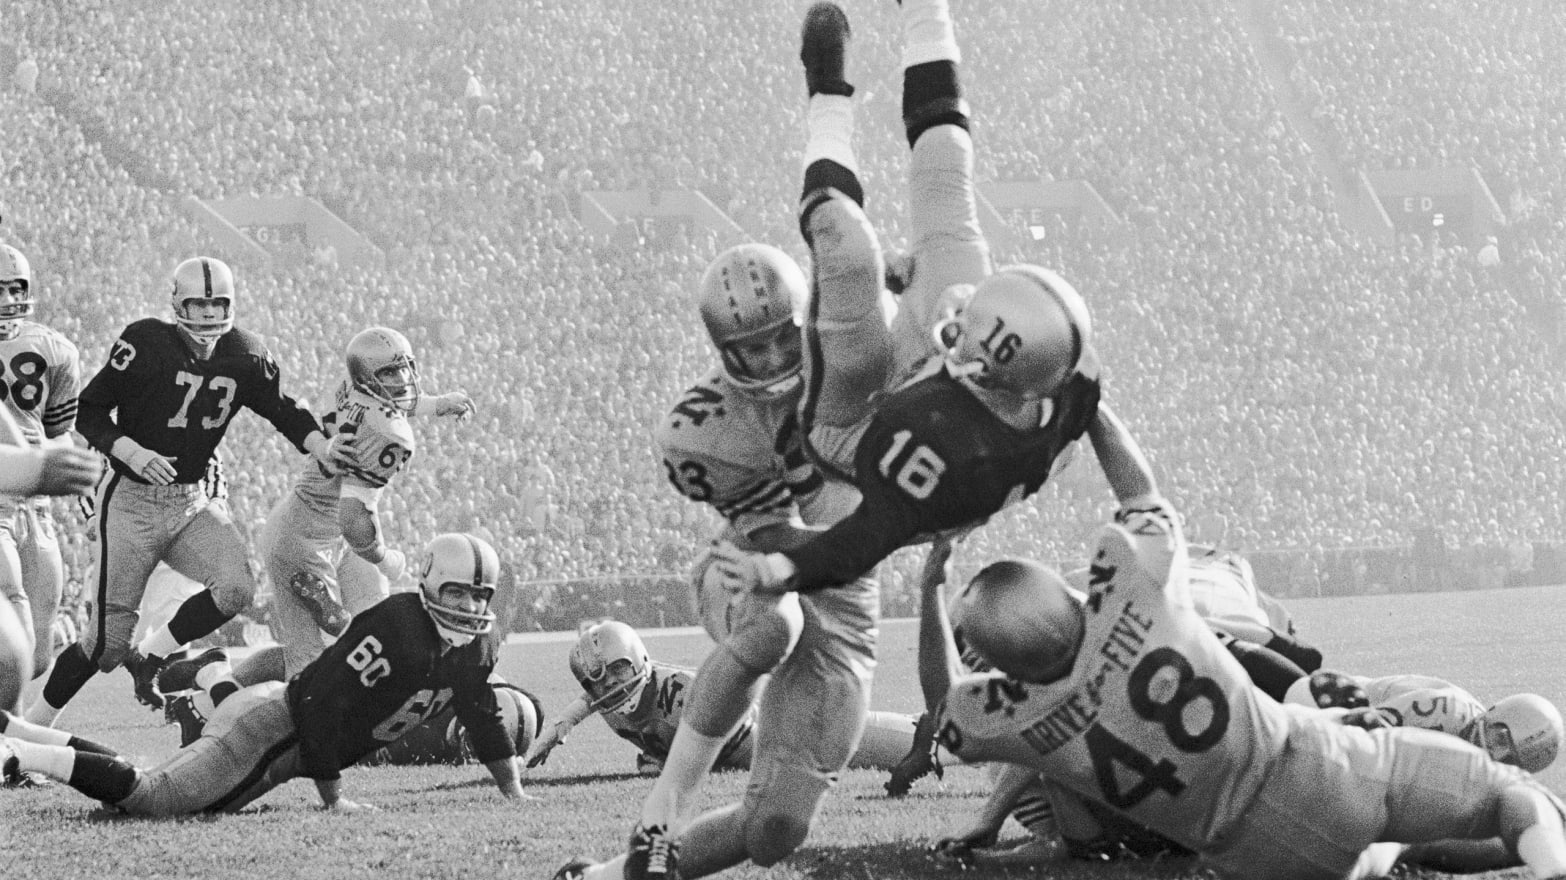 In the Wake of JFK's death, Remembering the Army-Navy Game of 1963